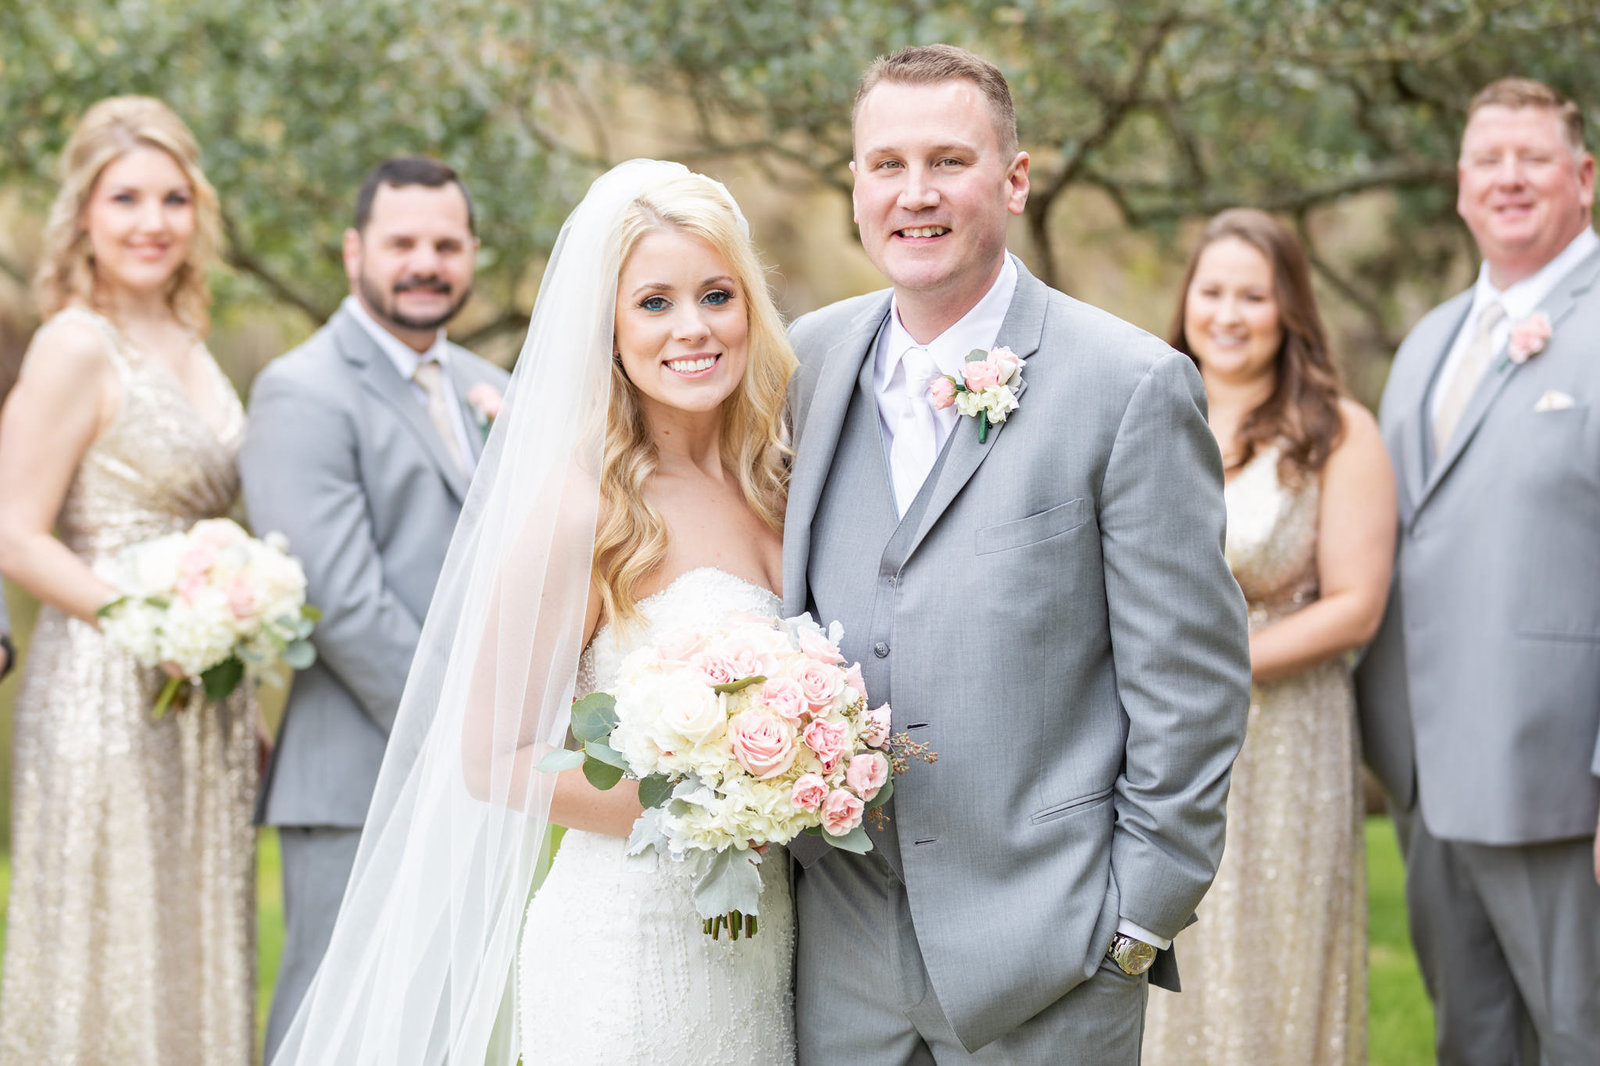 Wedding-At-Hidden-Falls-Dawn-Elizabeth-Studios-San-Antonio-Wedding-Photographer-0059